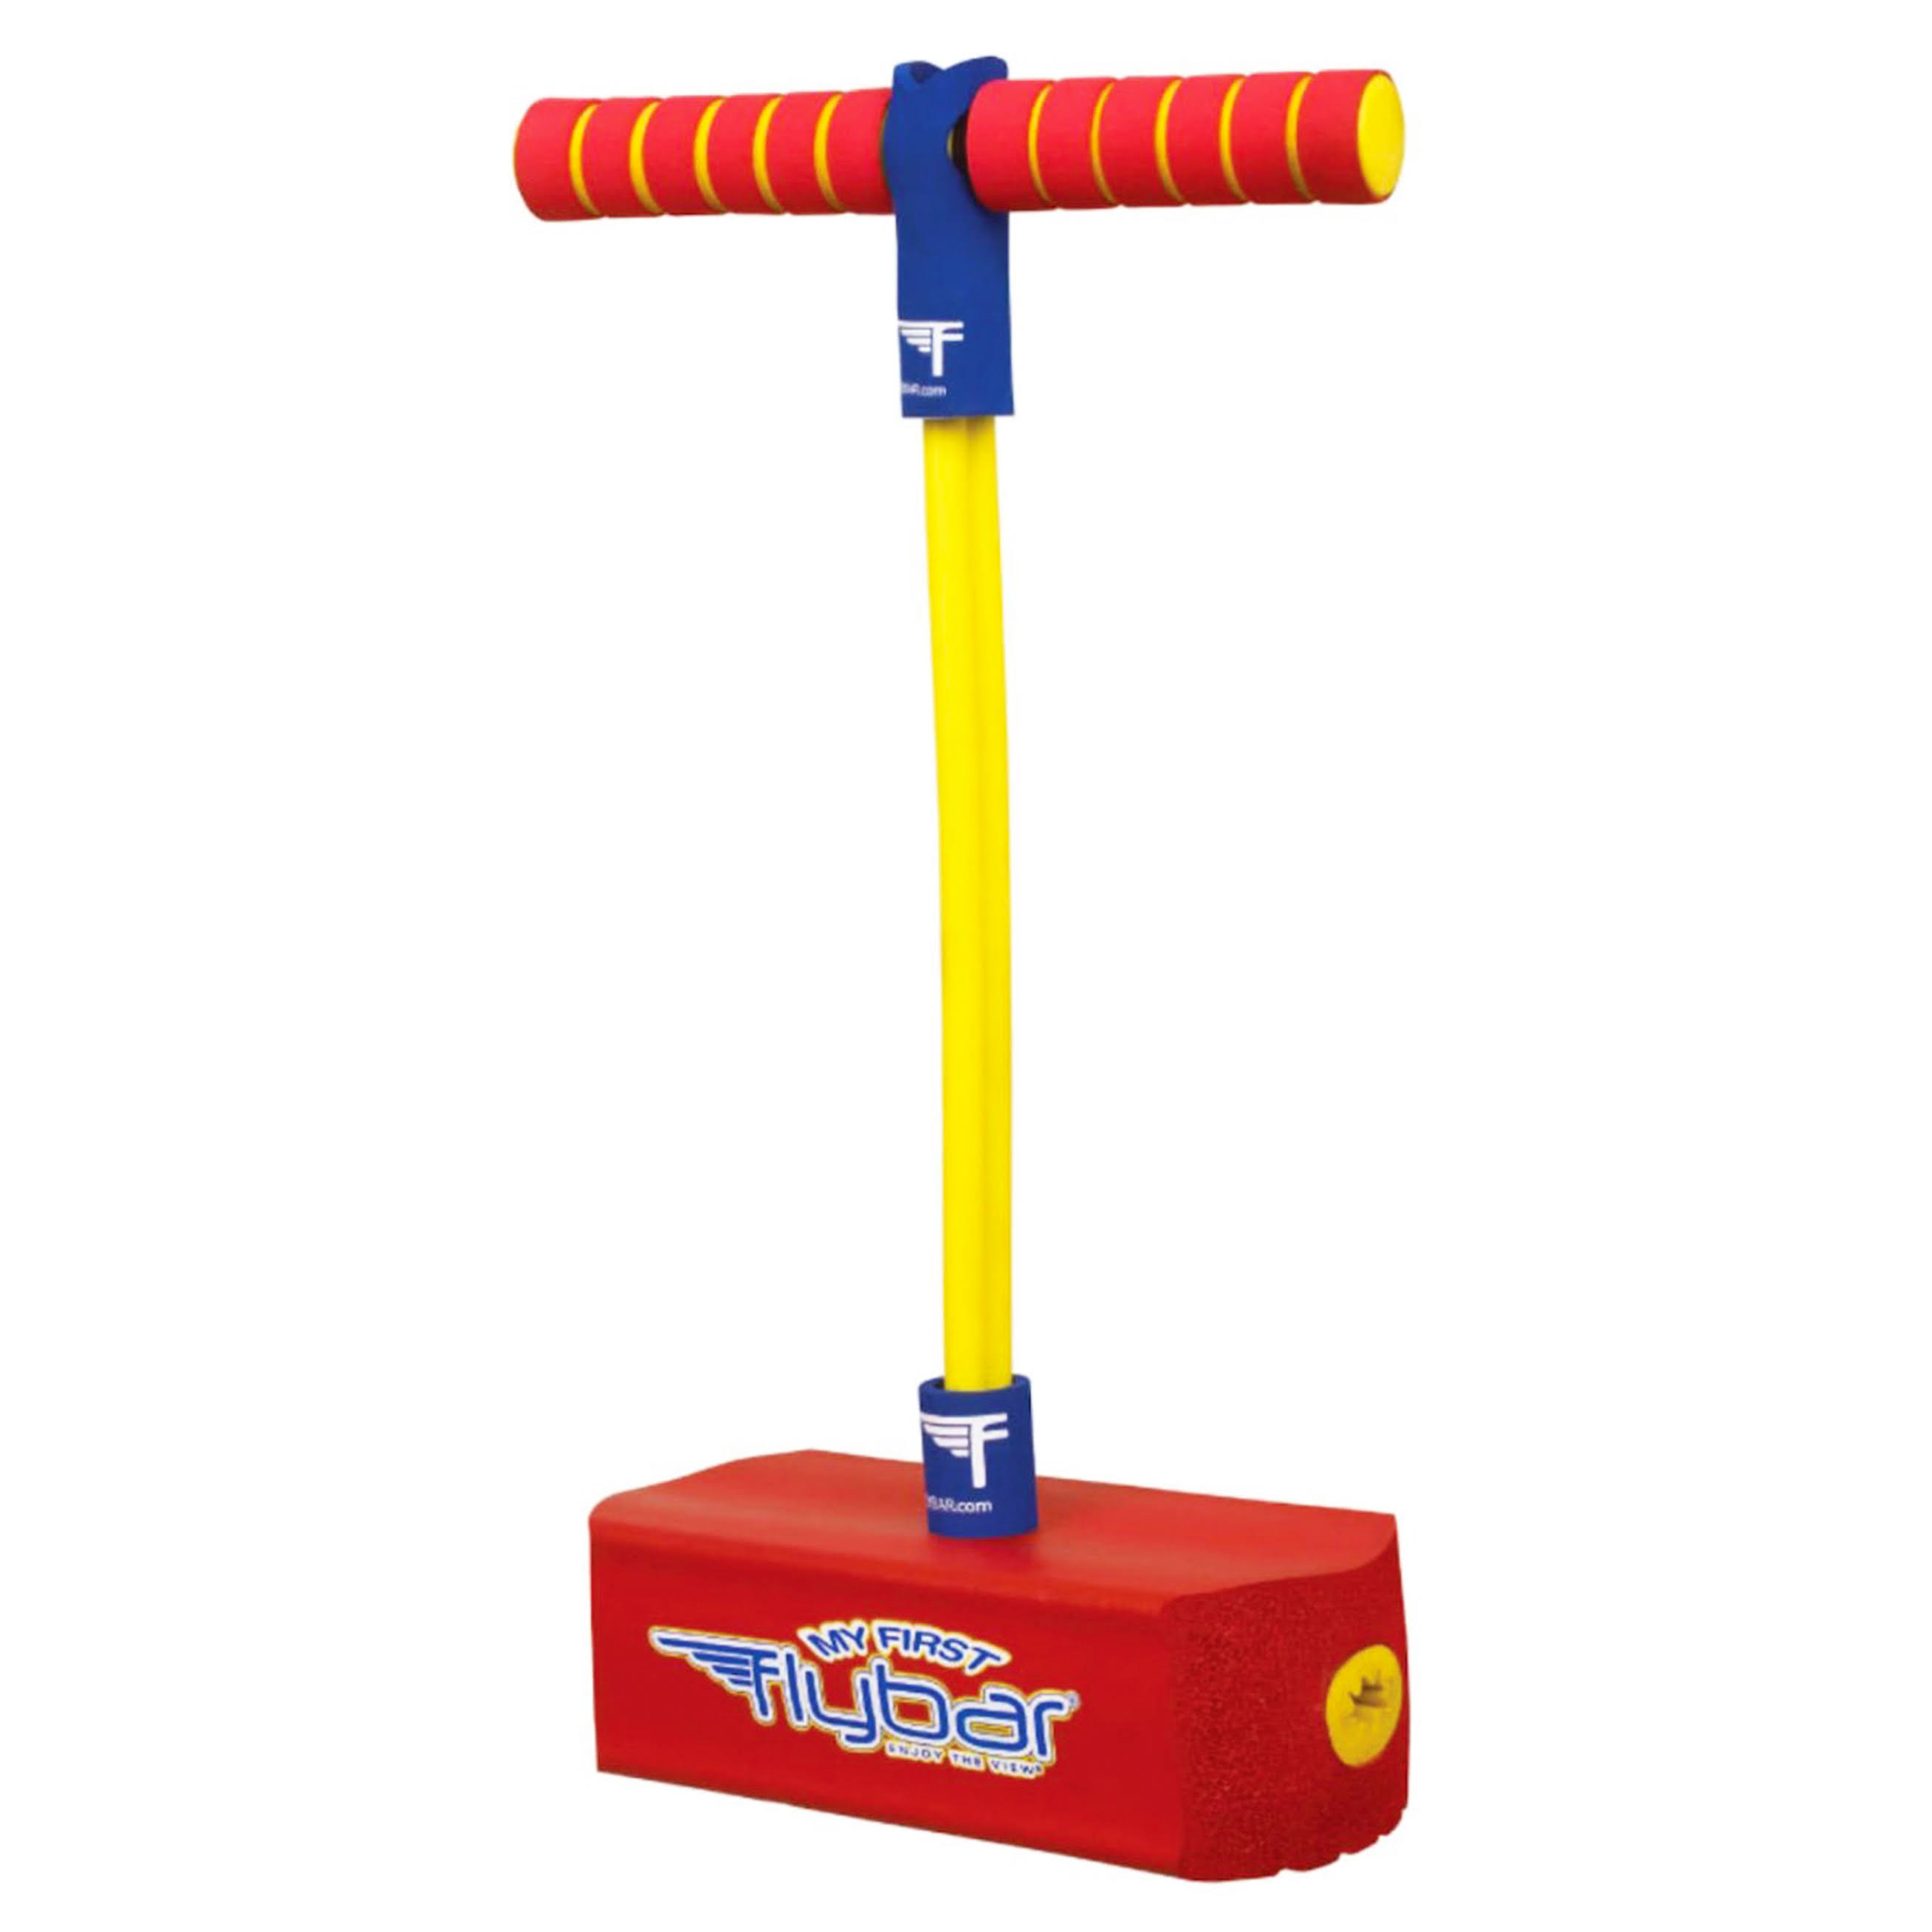 My First Flybar Kids Foam Pogo Stick